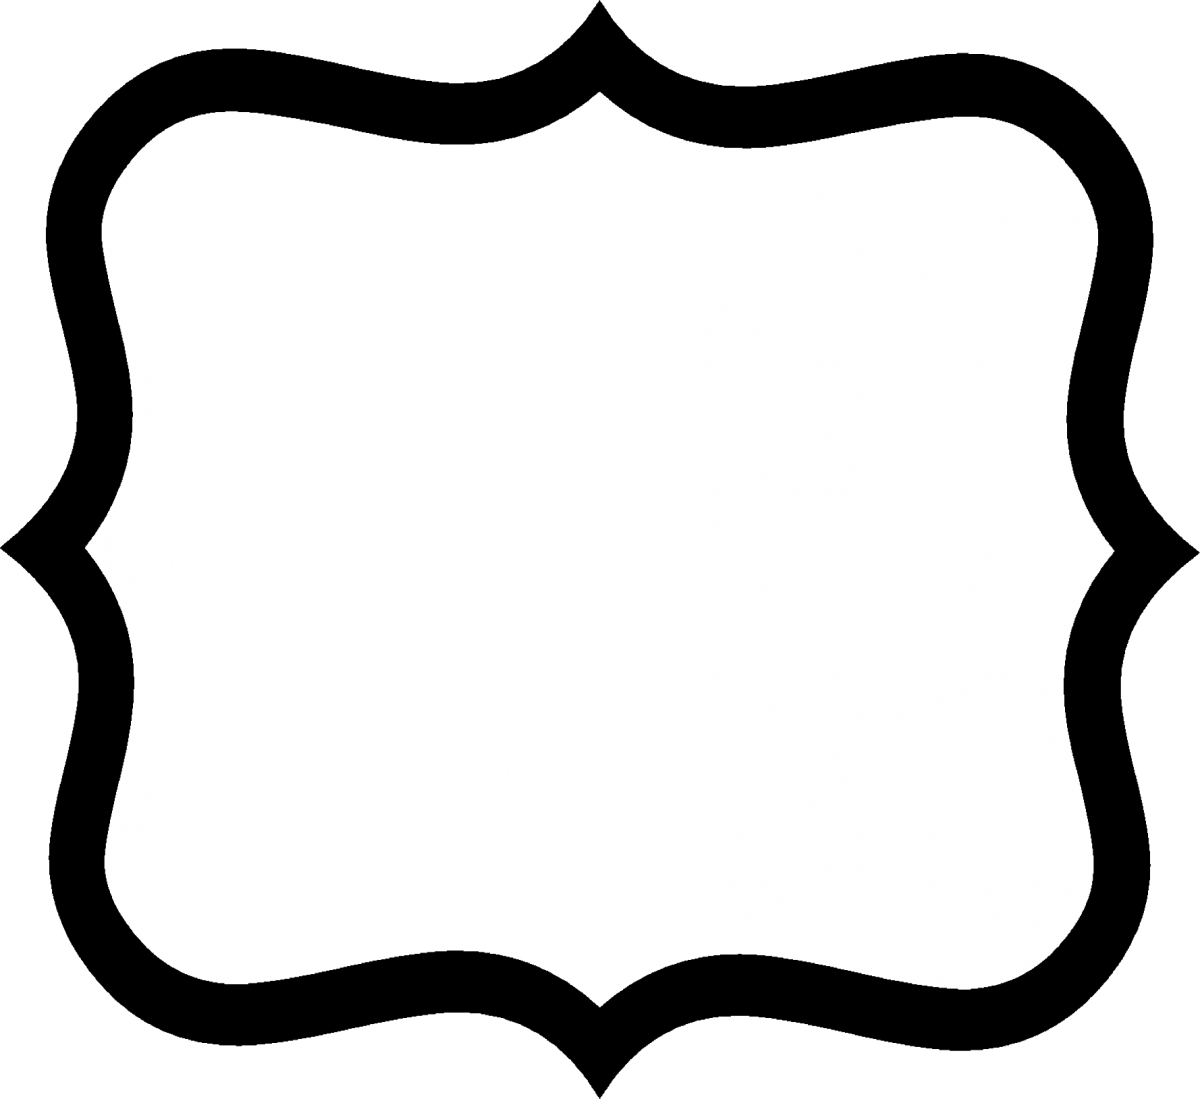 Square clipart square shaped. Fancy label shape clip